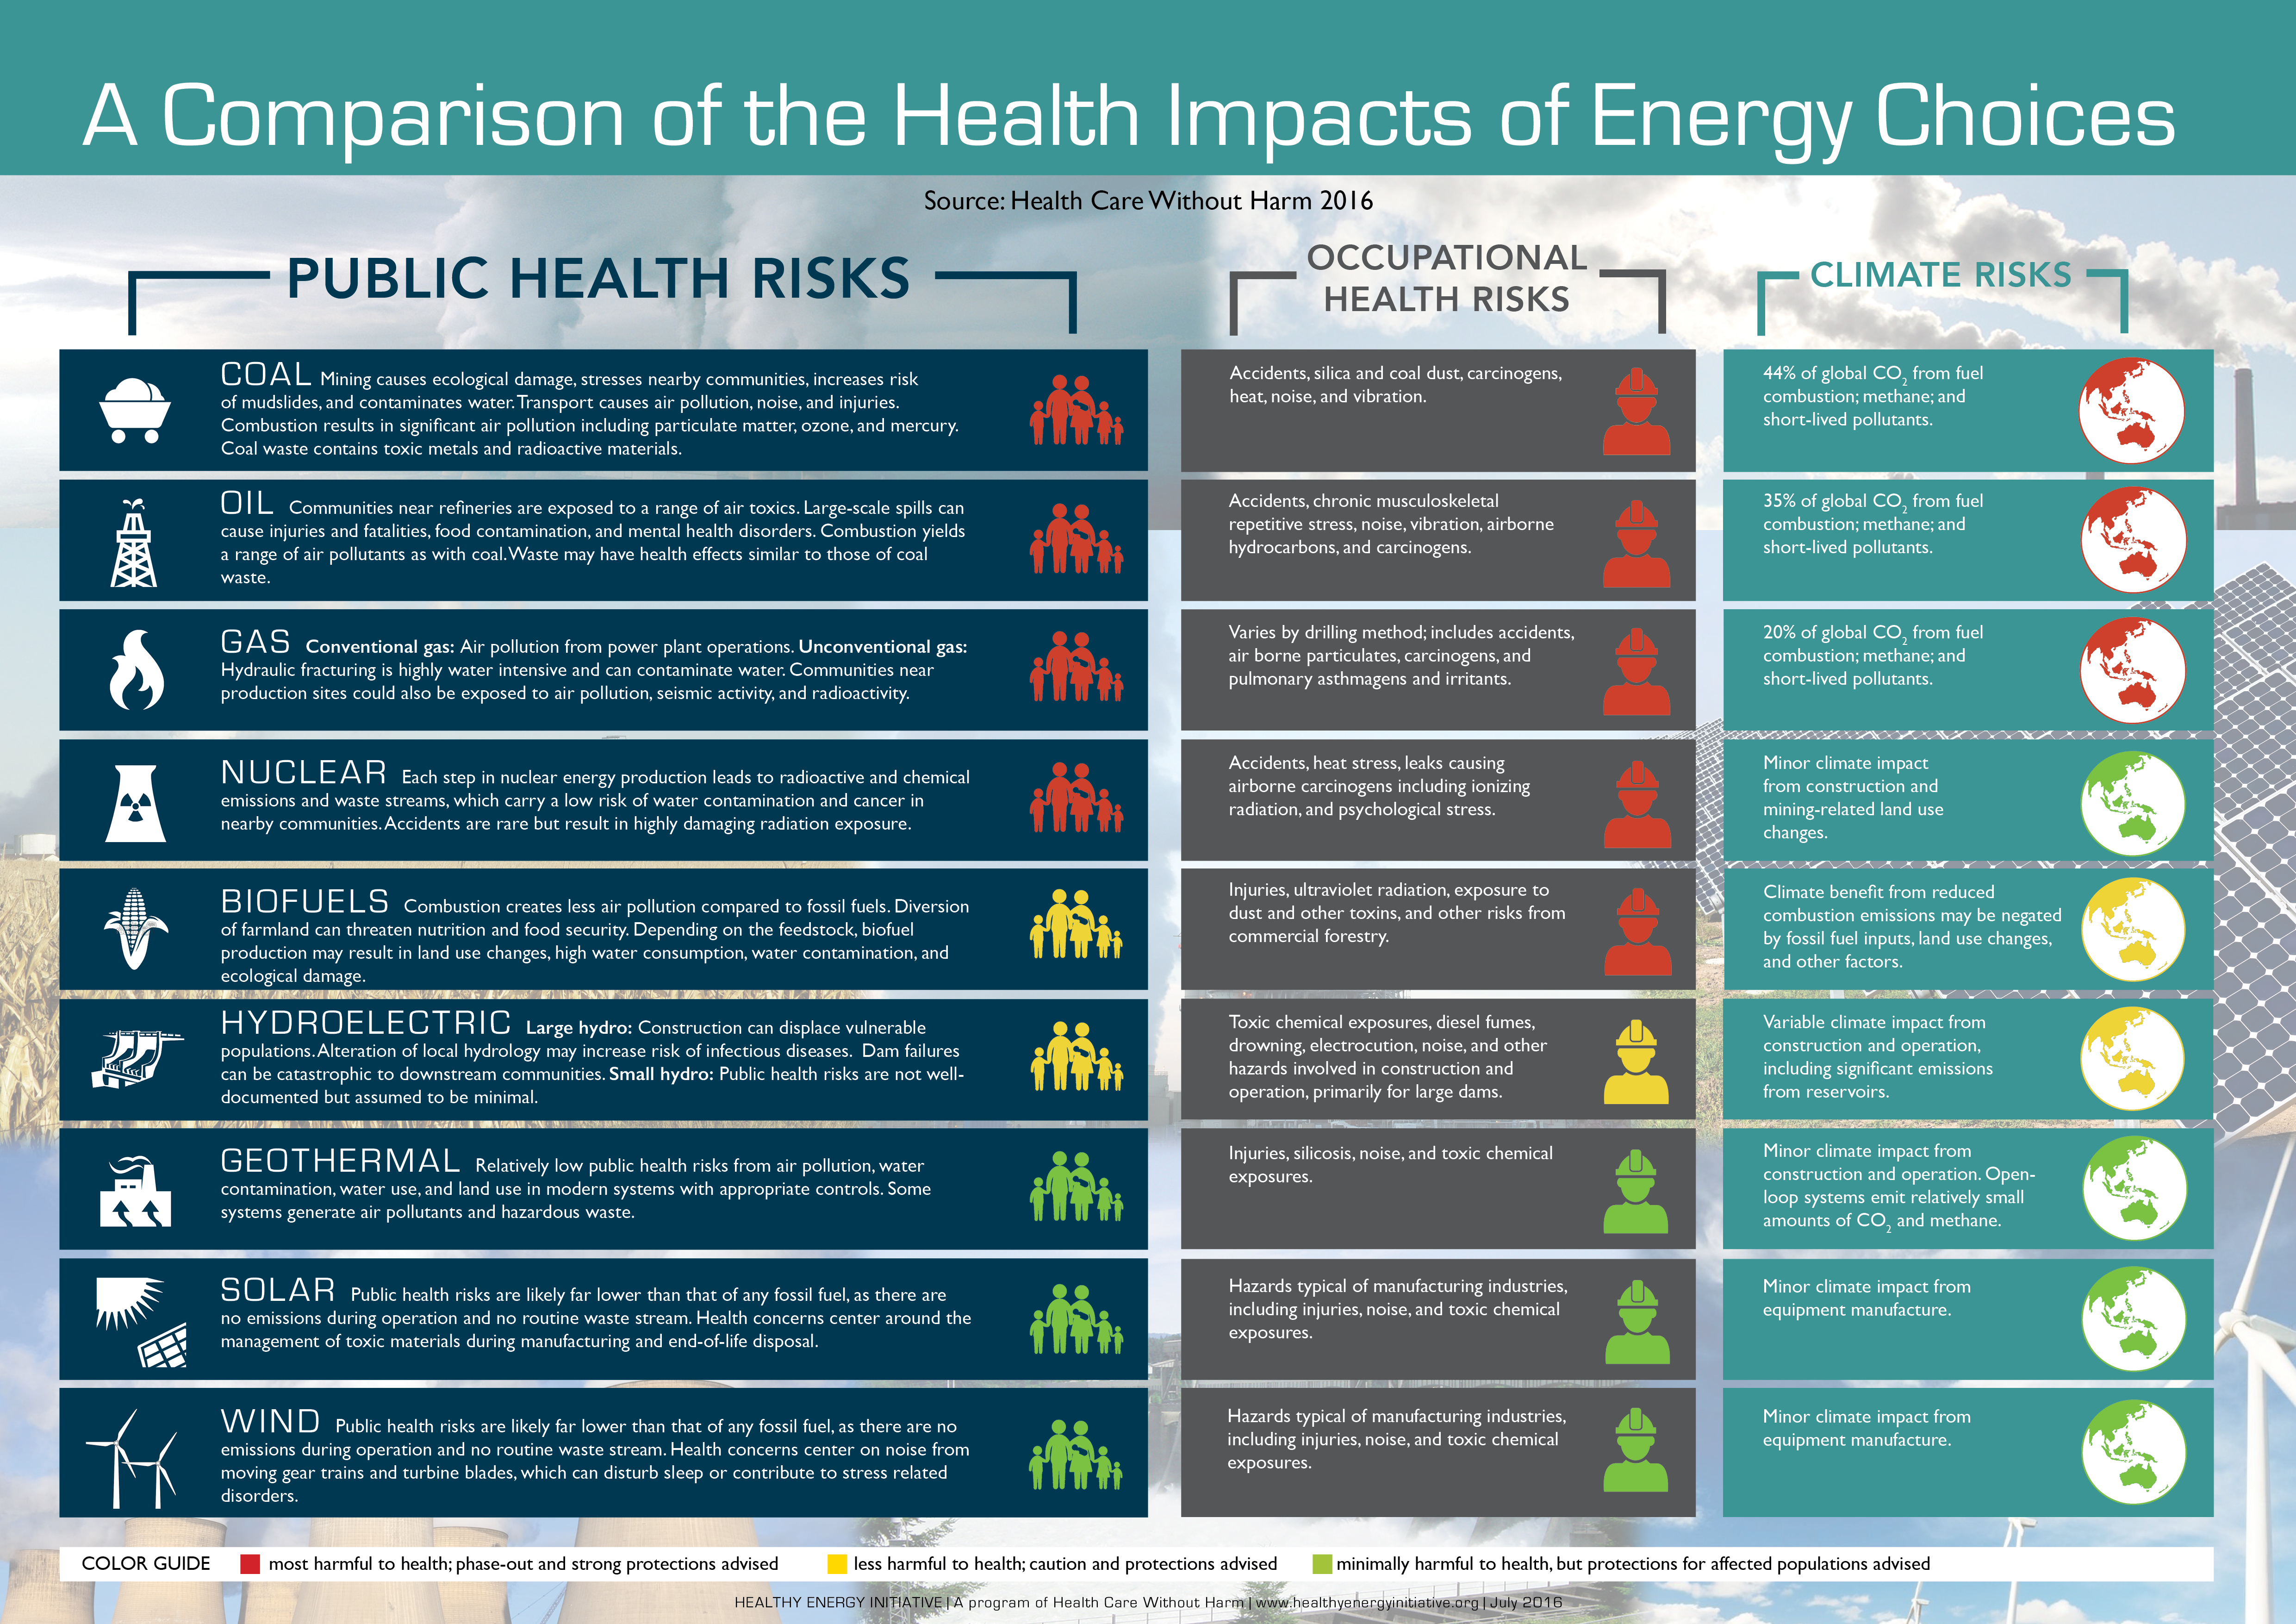 A-Comparison-of-the-Health-Impacts-of-Energy-Choices